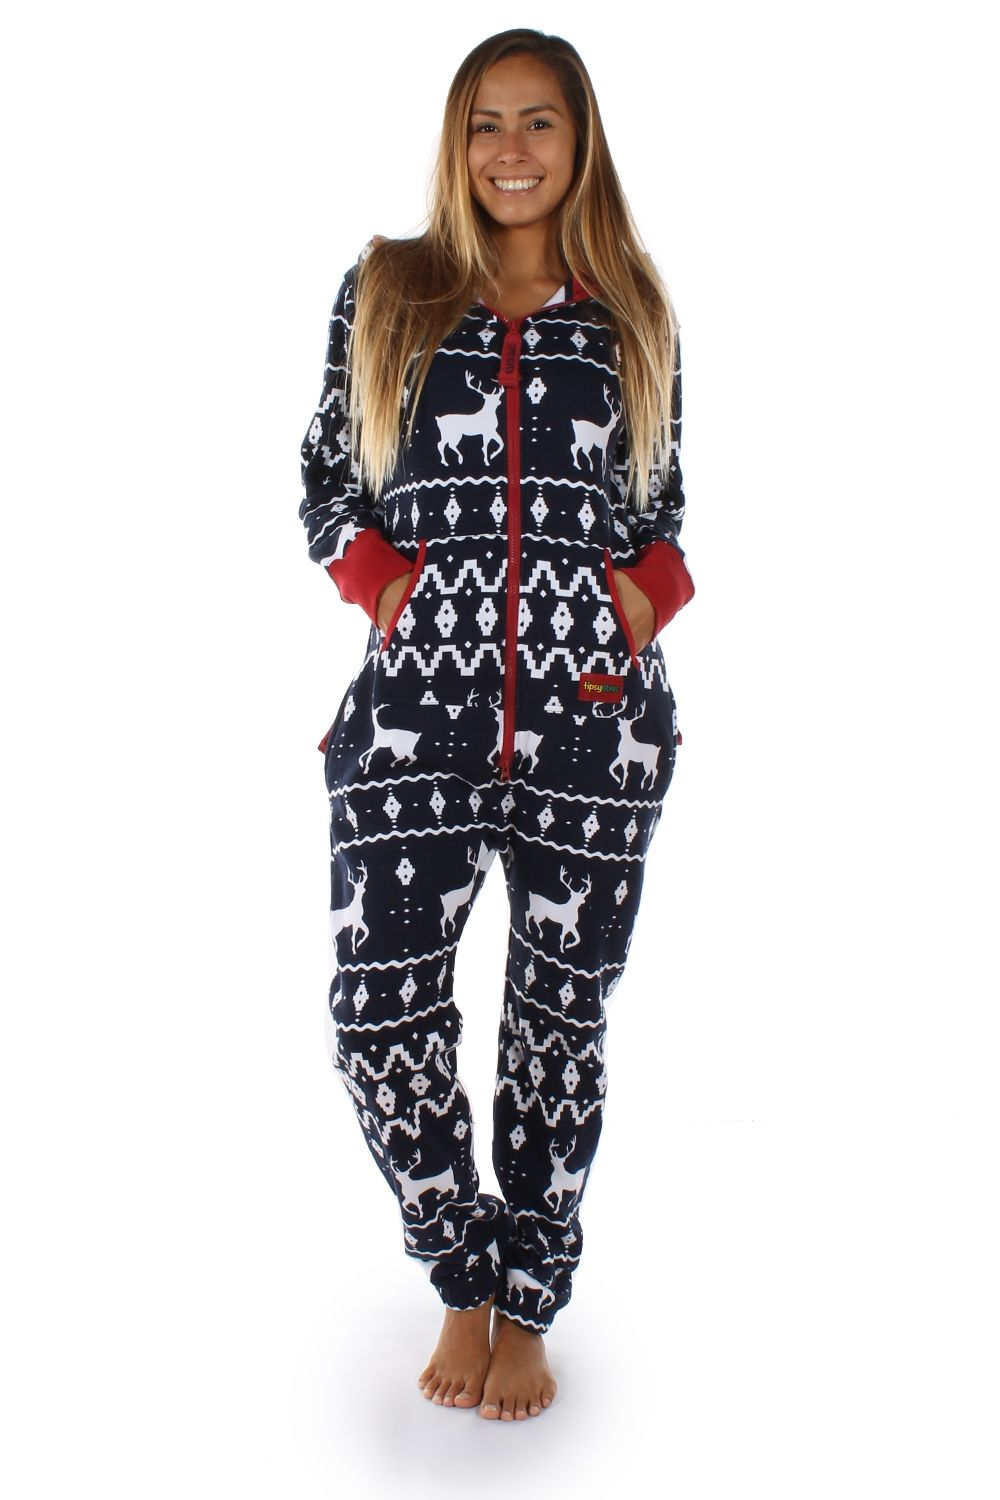 fac2a05a8 Women's Blue Reindeer Jumpsuit | Christmas in 2019 | Christmas pjs ...